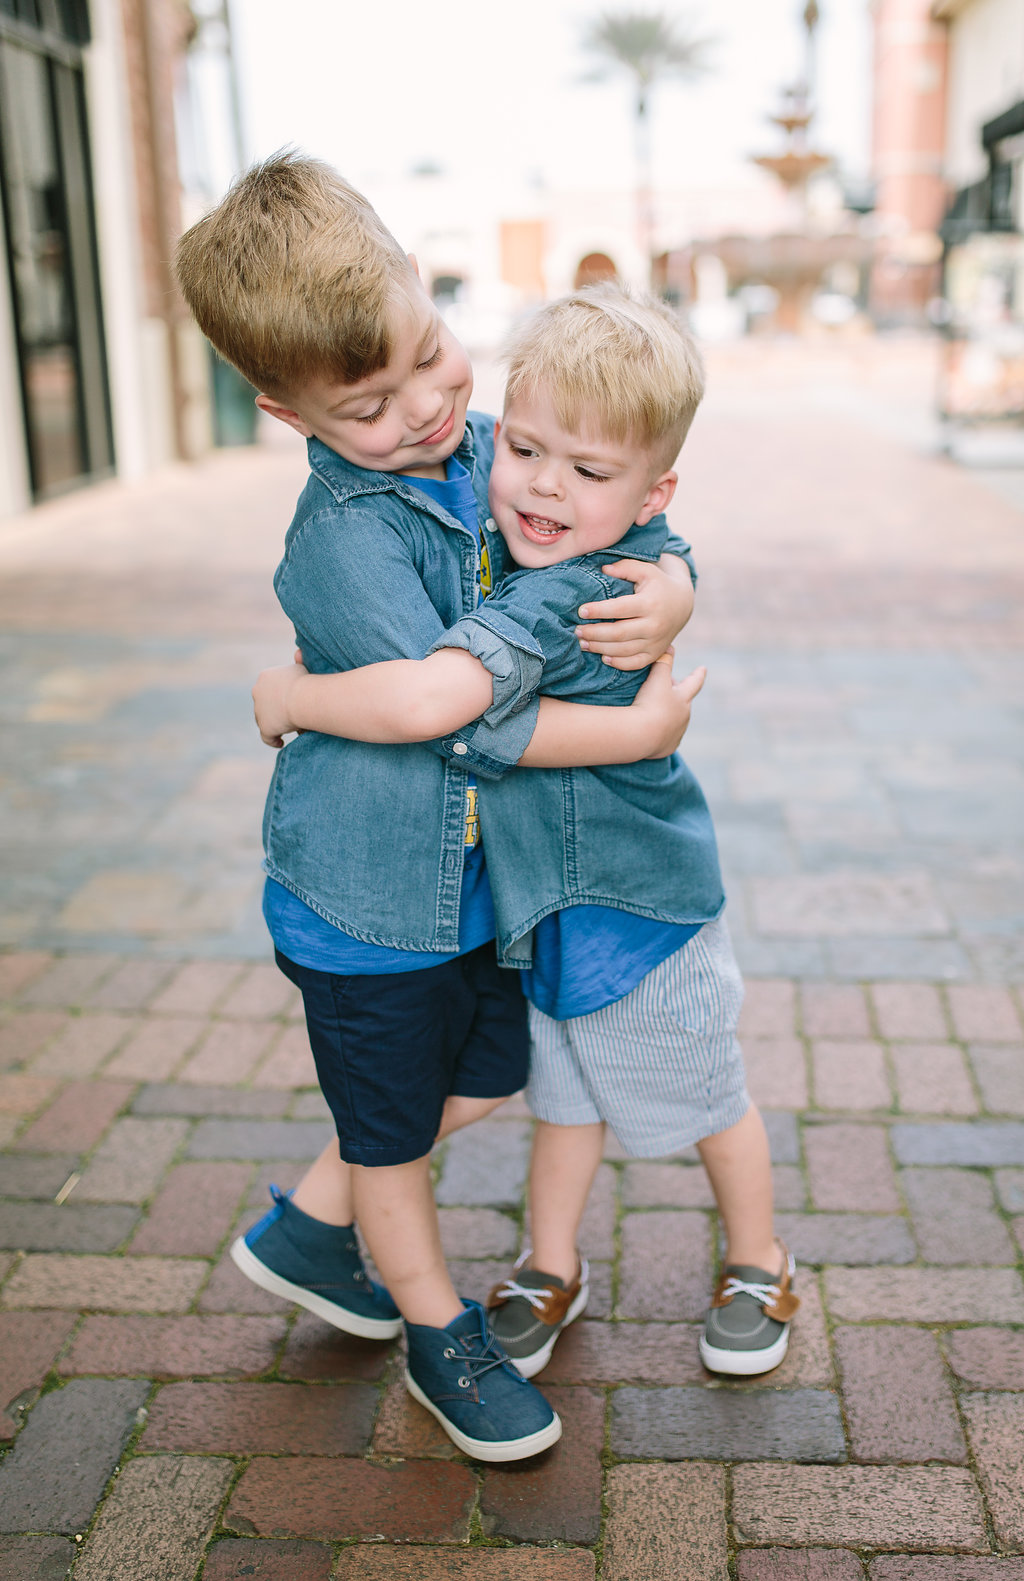 Toddler clothes | Boy clothes | Carter's | Boys Spring Fashion | Uptown with Elly Brown